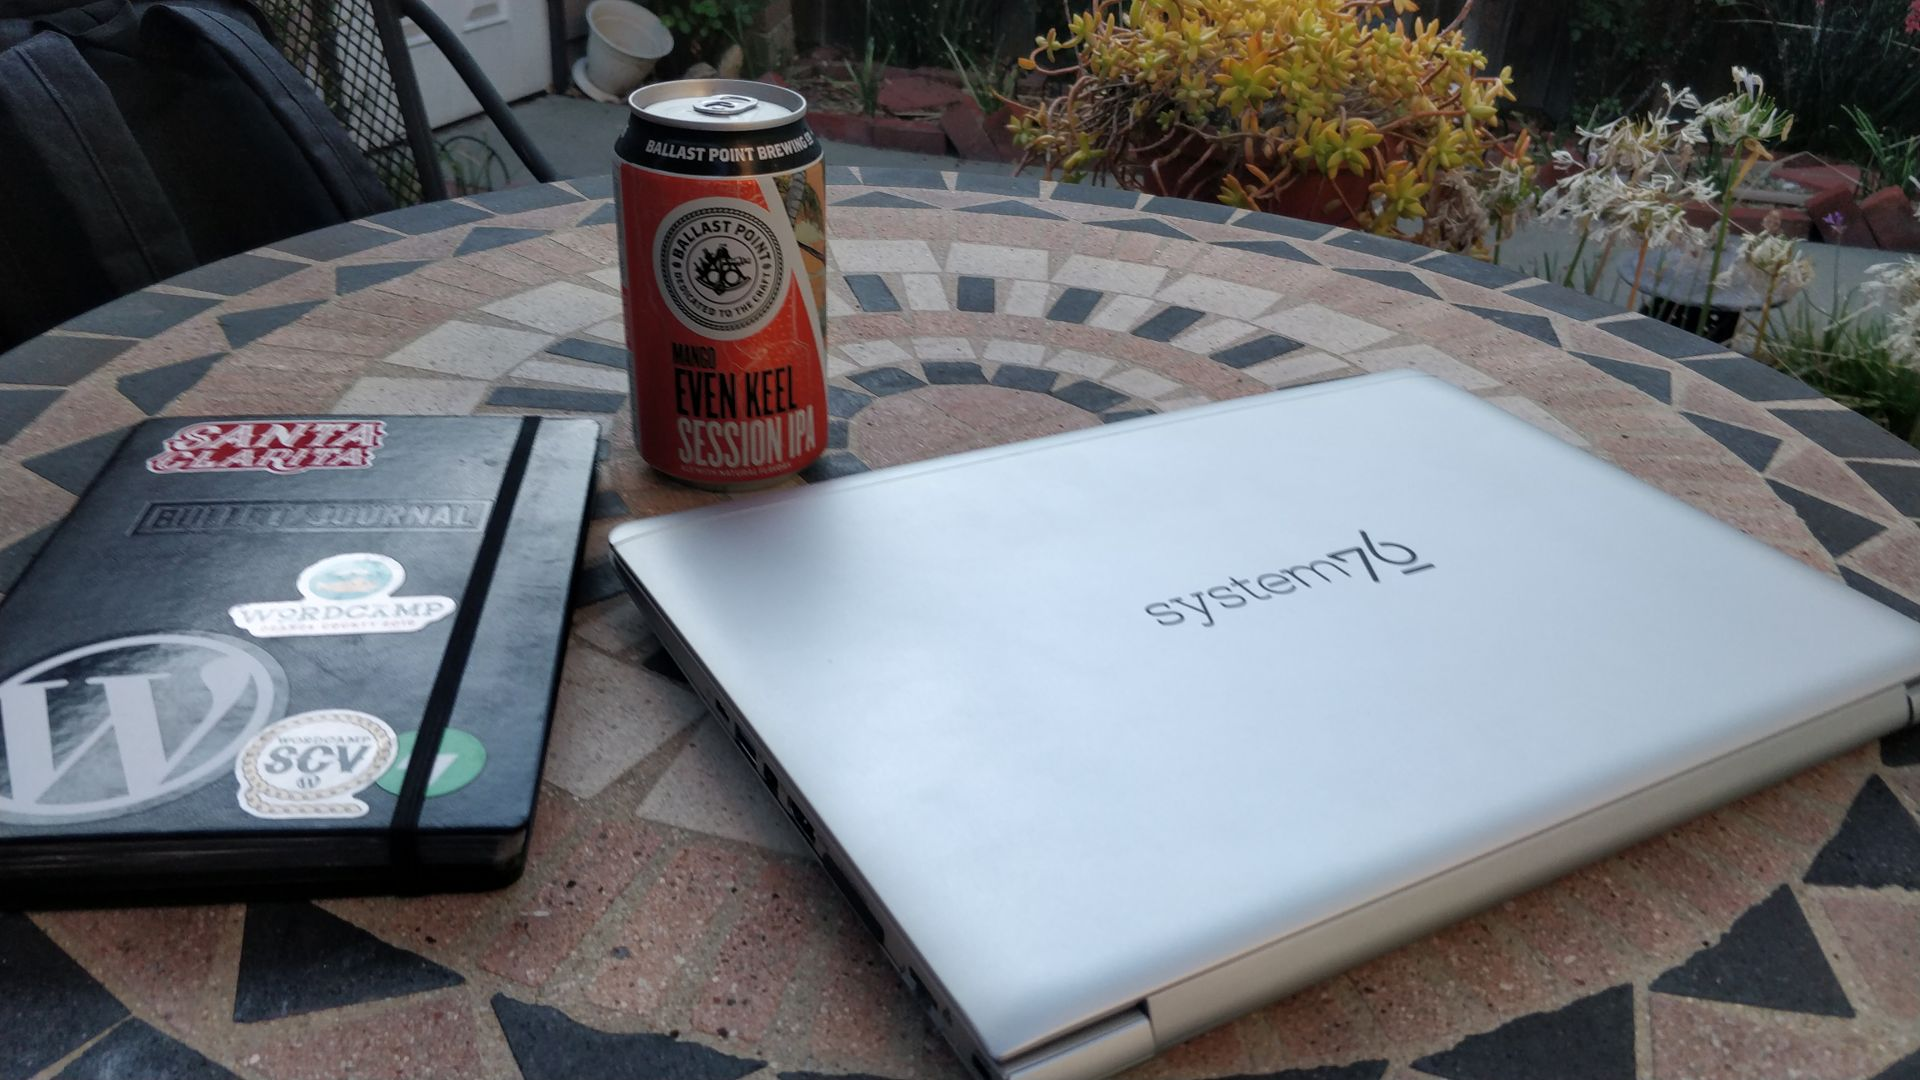 Time for an ale and WP-CLI